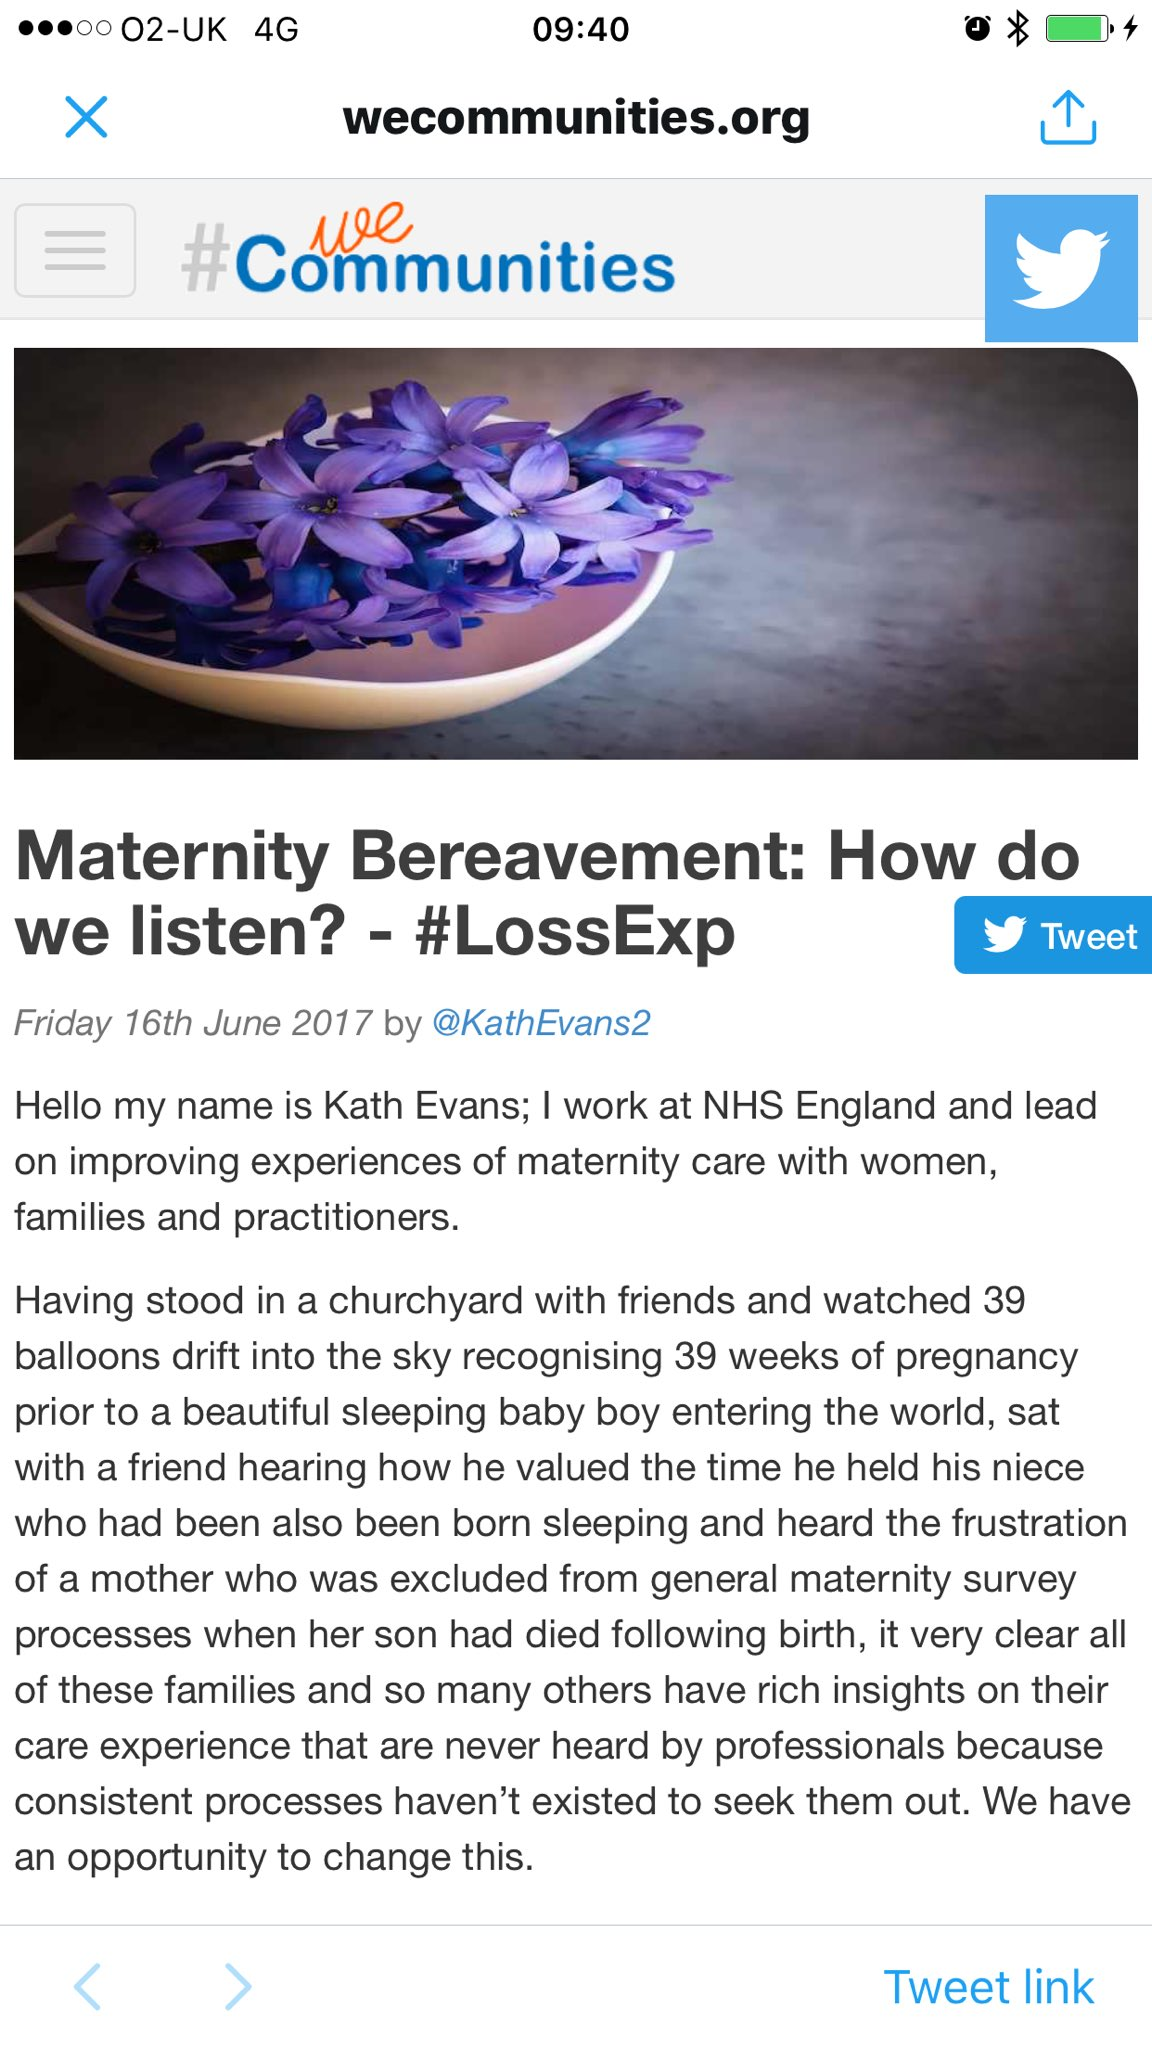 Are you checking in to #LossExp this week? Details here https://t.co/MT233Az829 from @KathEvans2 do find the time to check in and share :) https://t.co/p56KAgPkL8